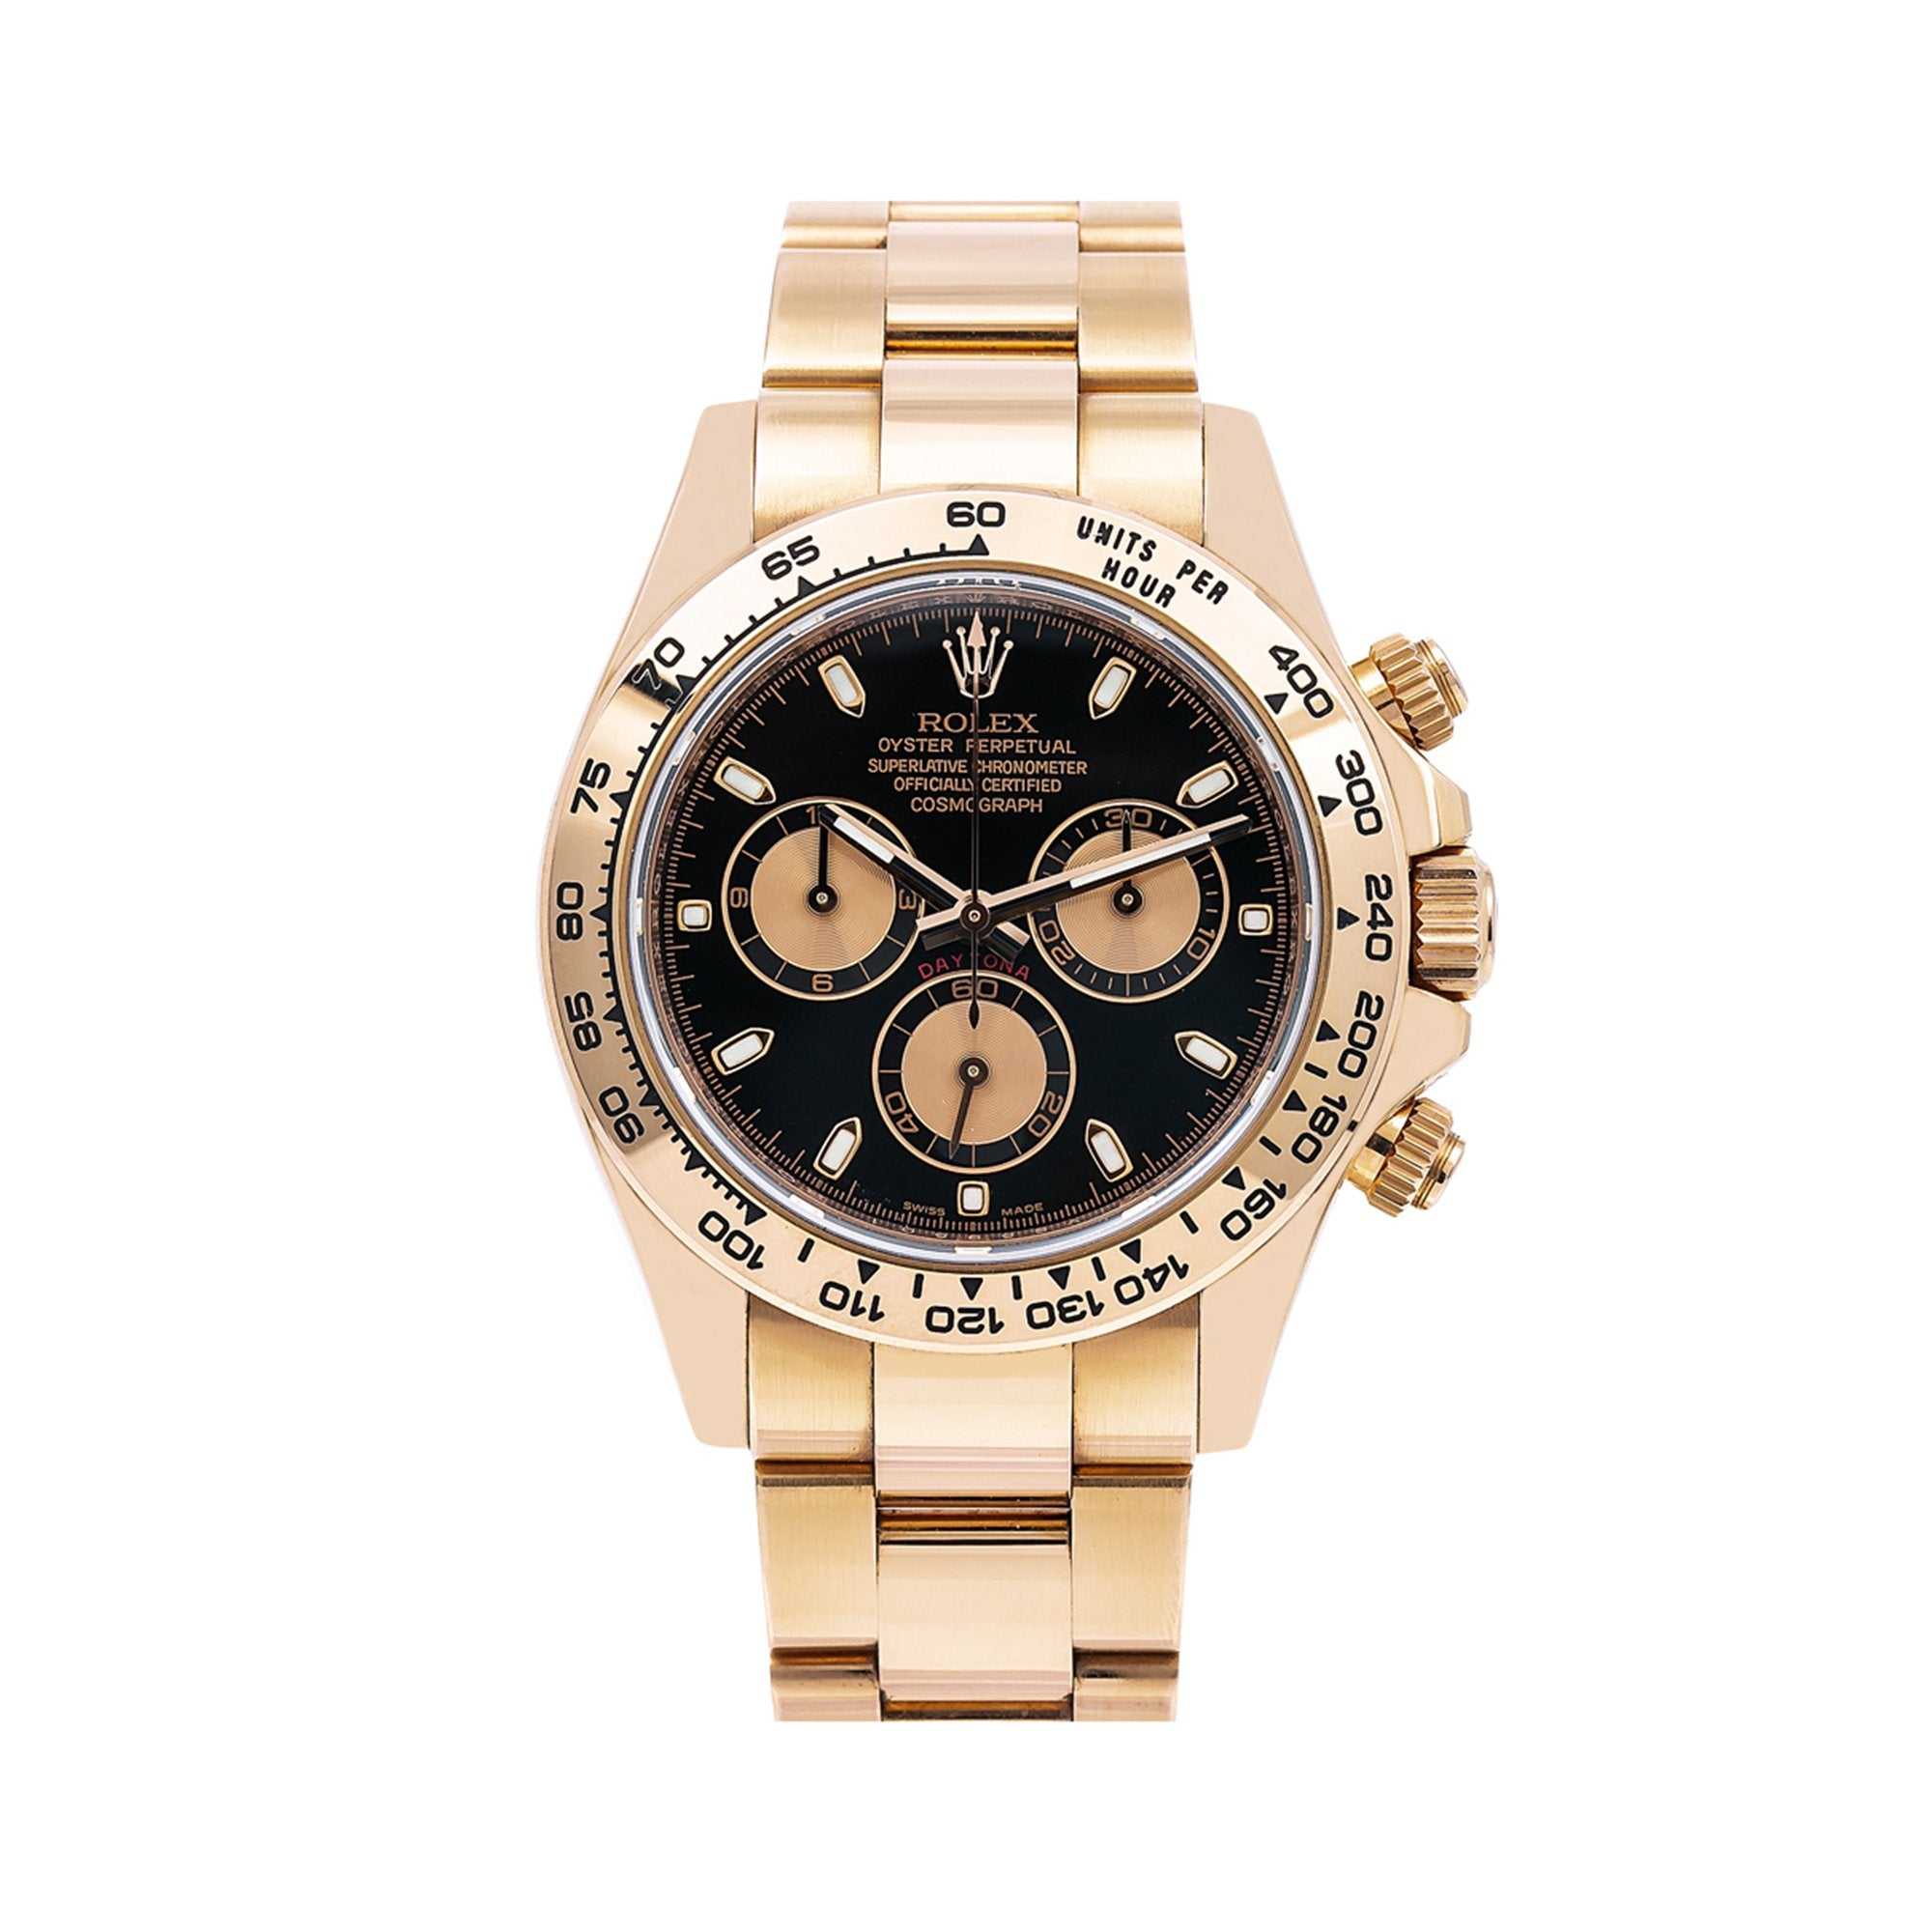 Rolex Daytona 116505 40MM Black Dial With Rose Gold Bracelet